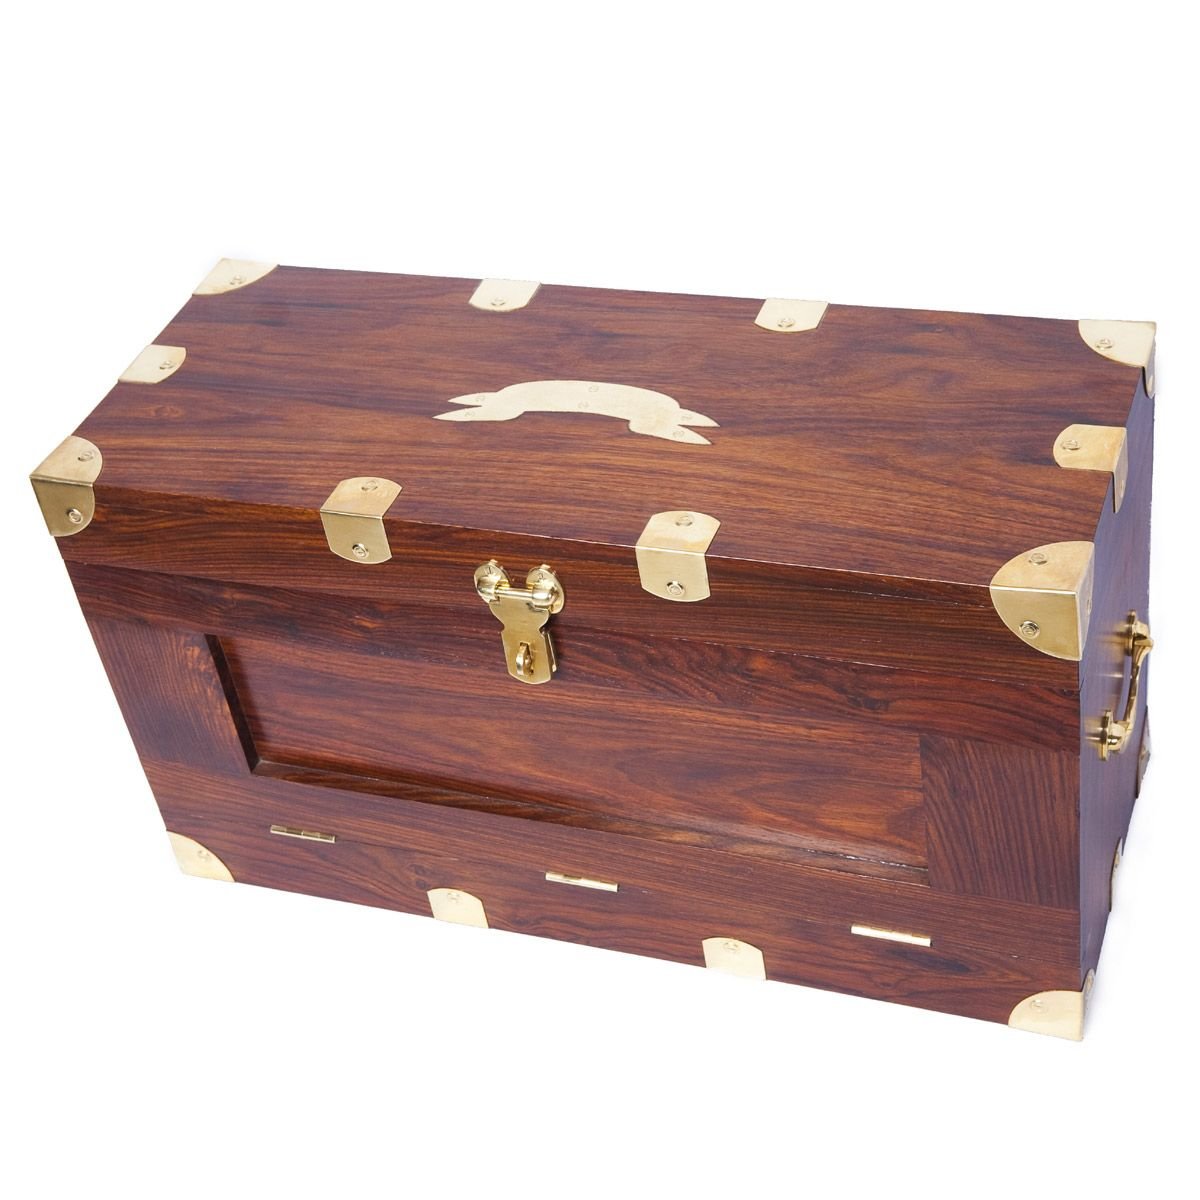 Product Details Recreate The Under Canvas Ambiance In Your Own Home With Our British Campaign Wri Campaign Furniture How To Antique Wood Vintage Chest Trunk